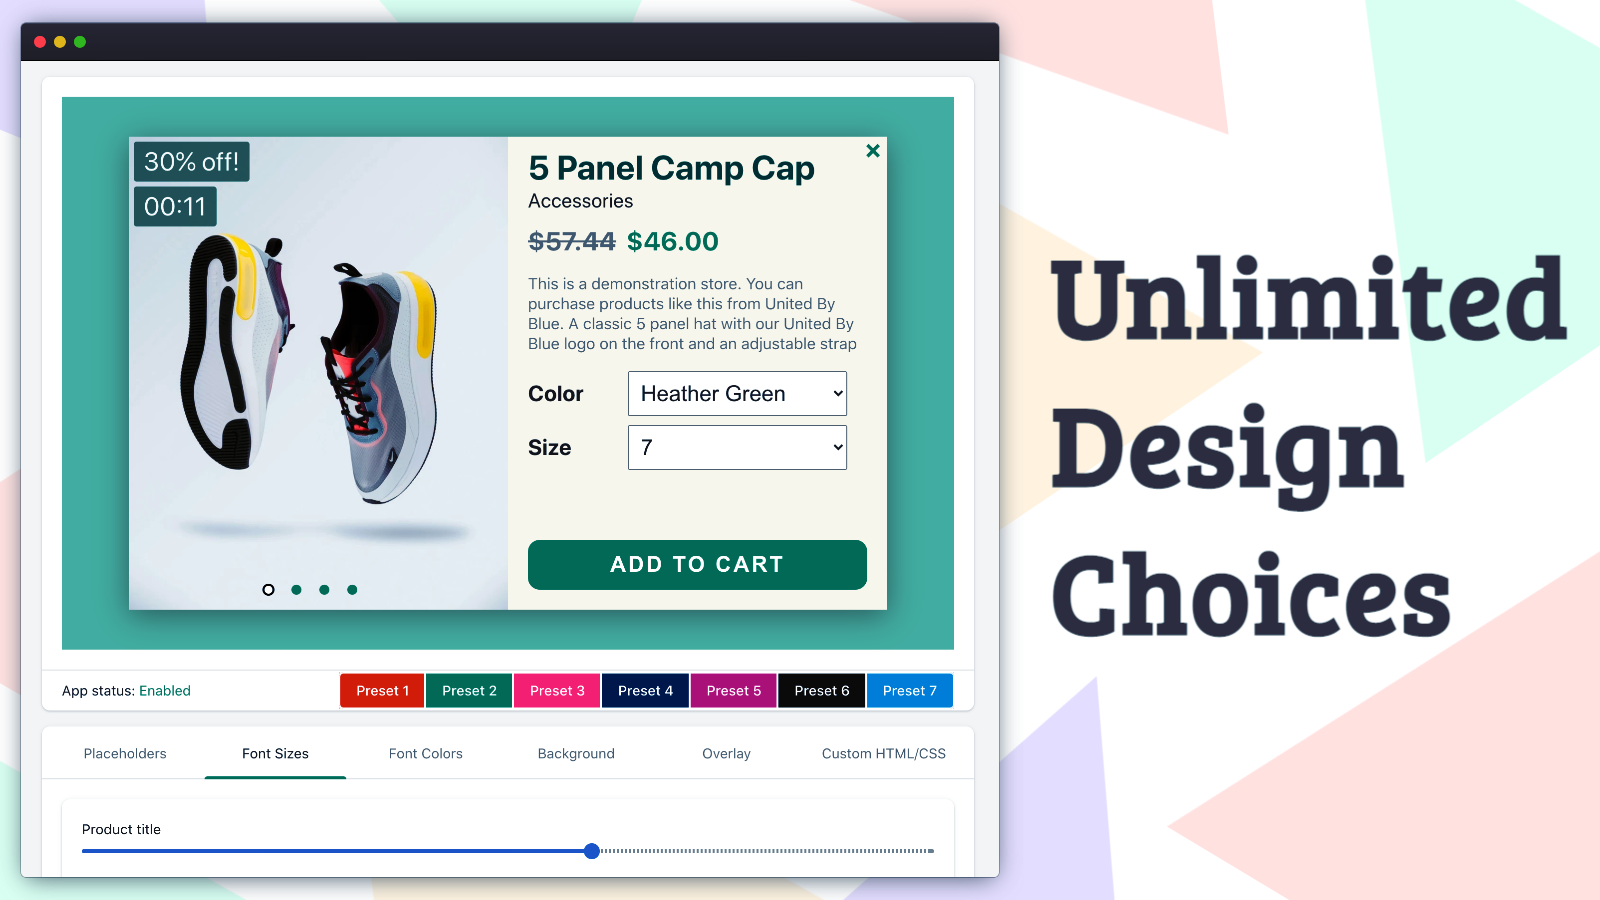 Unlimited Design Choices